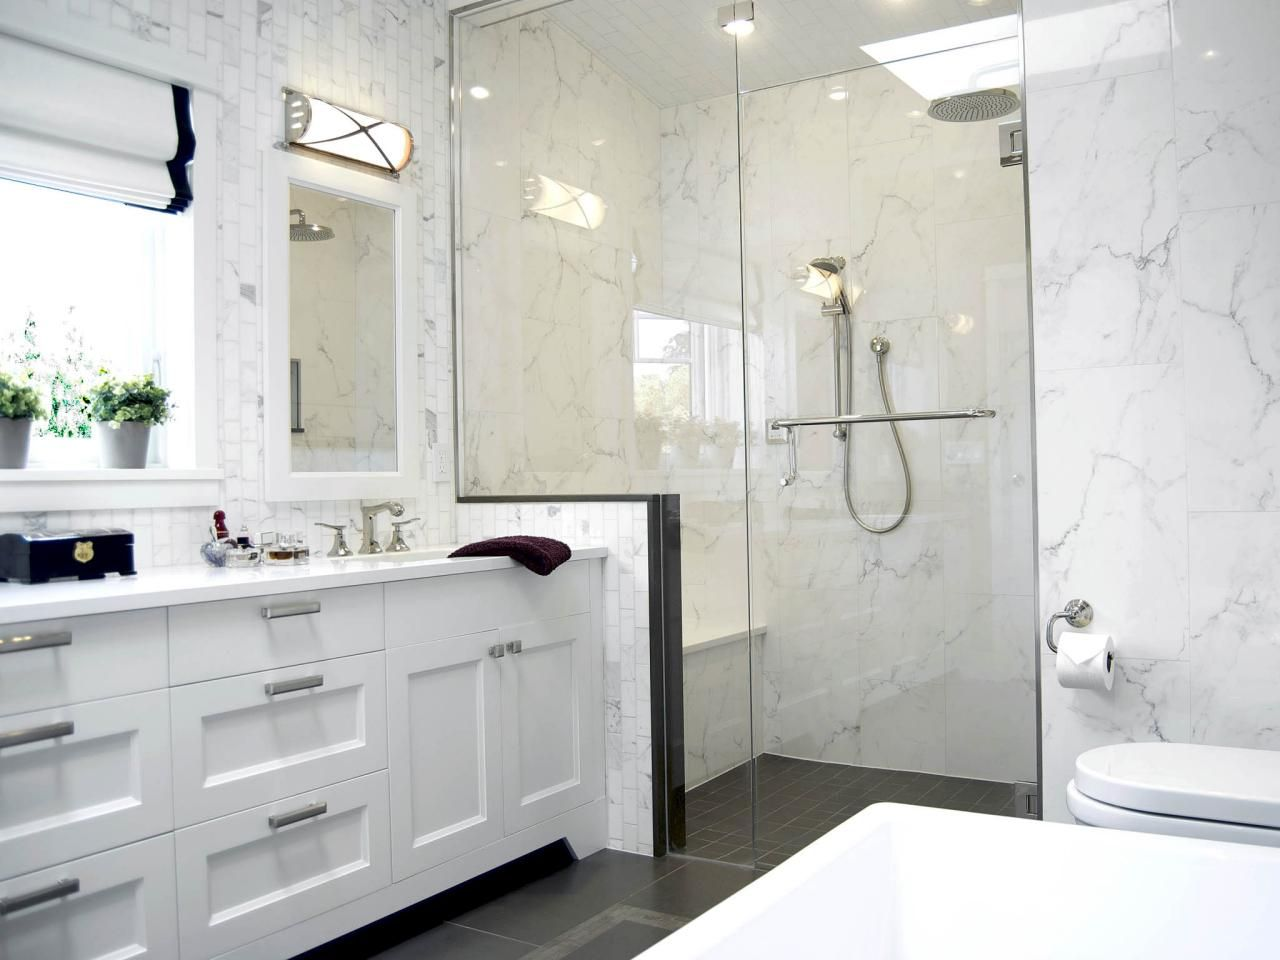 The Yearu0027s Best Bathrooms: NKBA Bath Design Finalists For 2014, Extended  Gallery | Bathroom